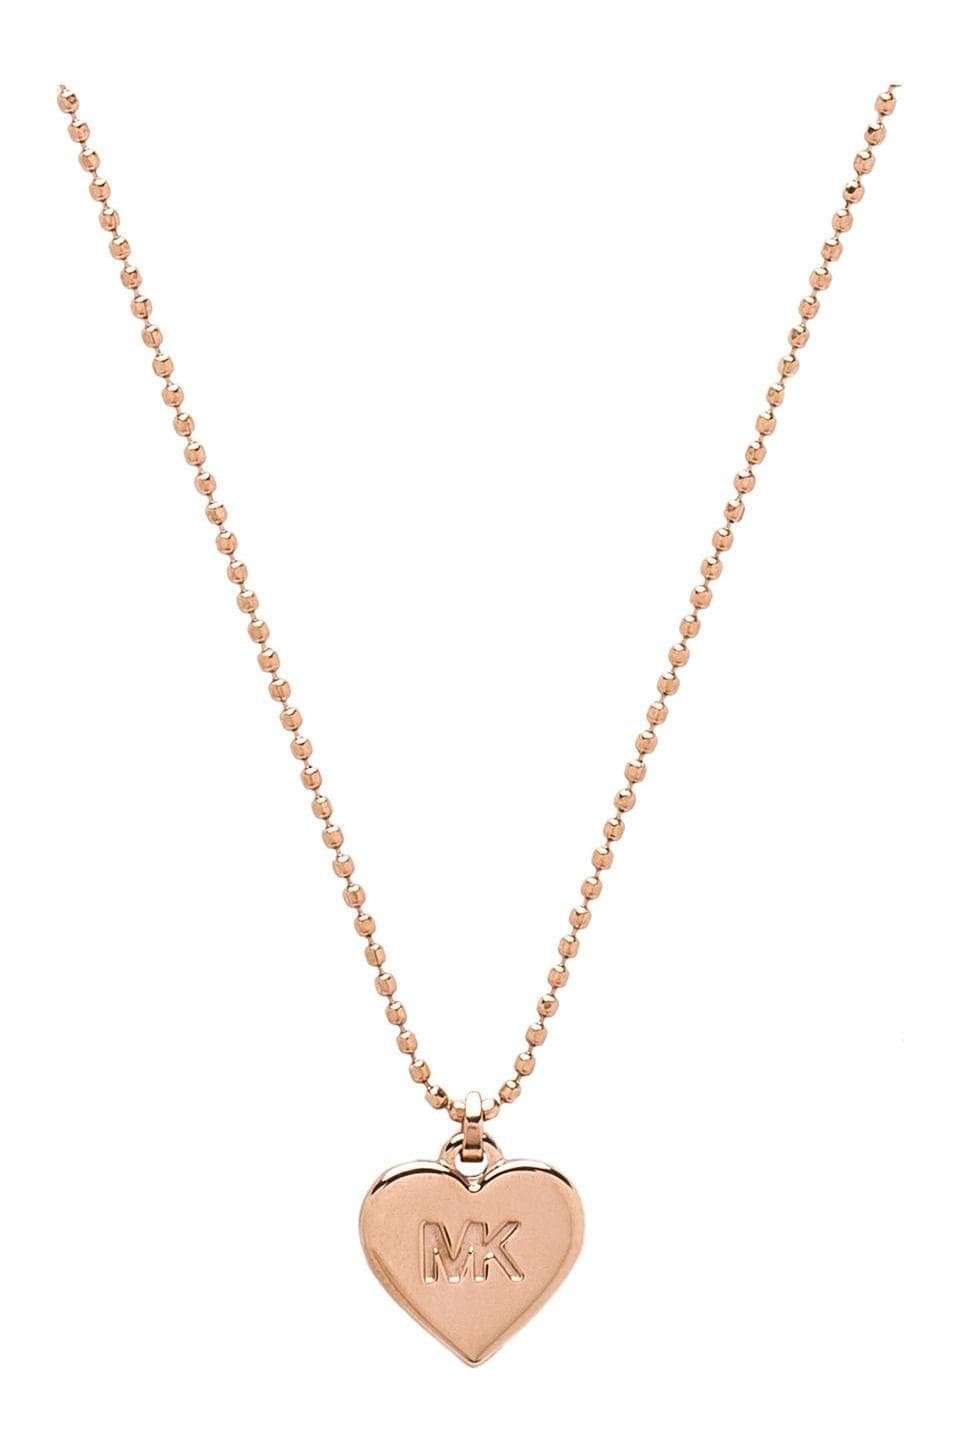 Michael Kors Small Heart Charm Necklace in Rose Gold